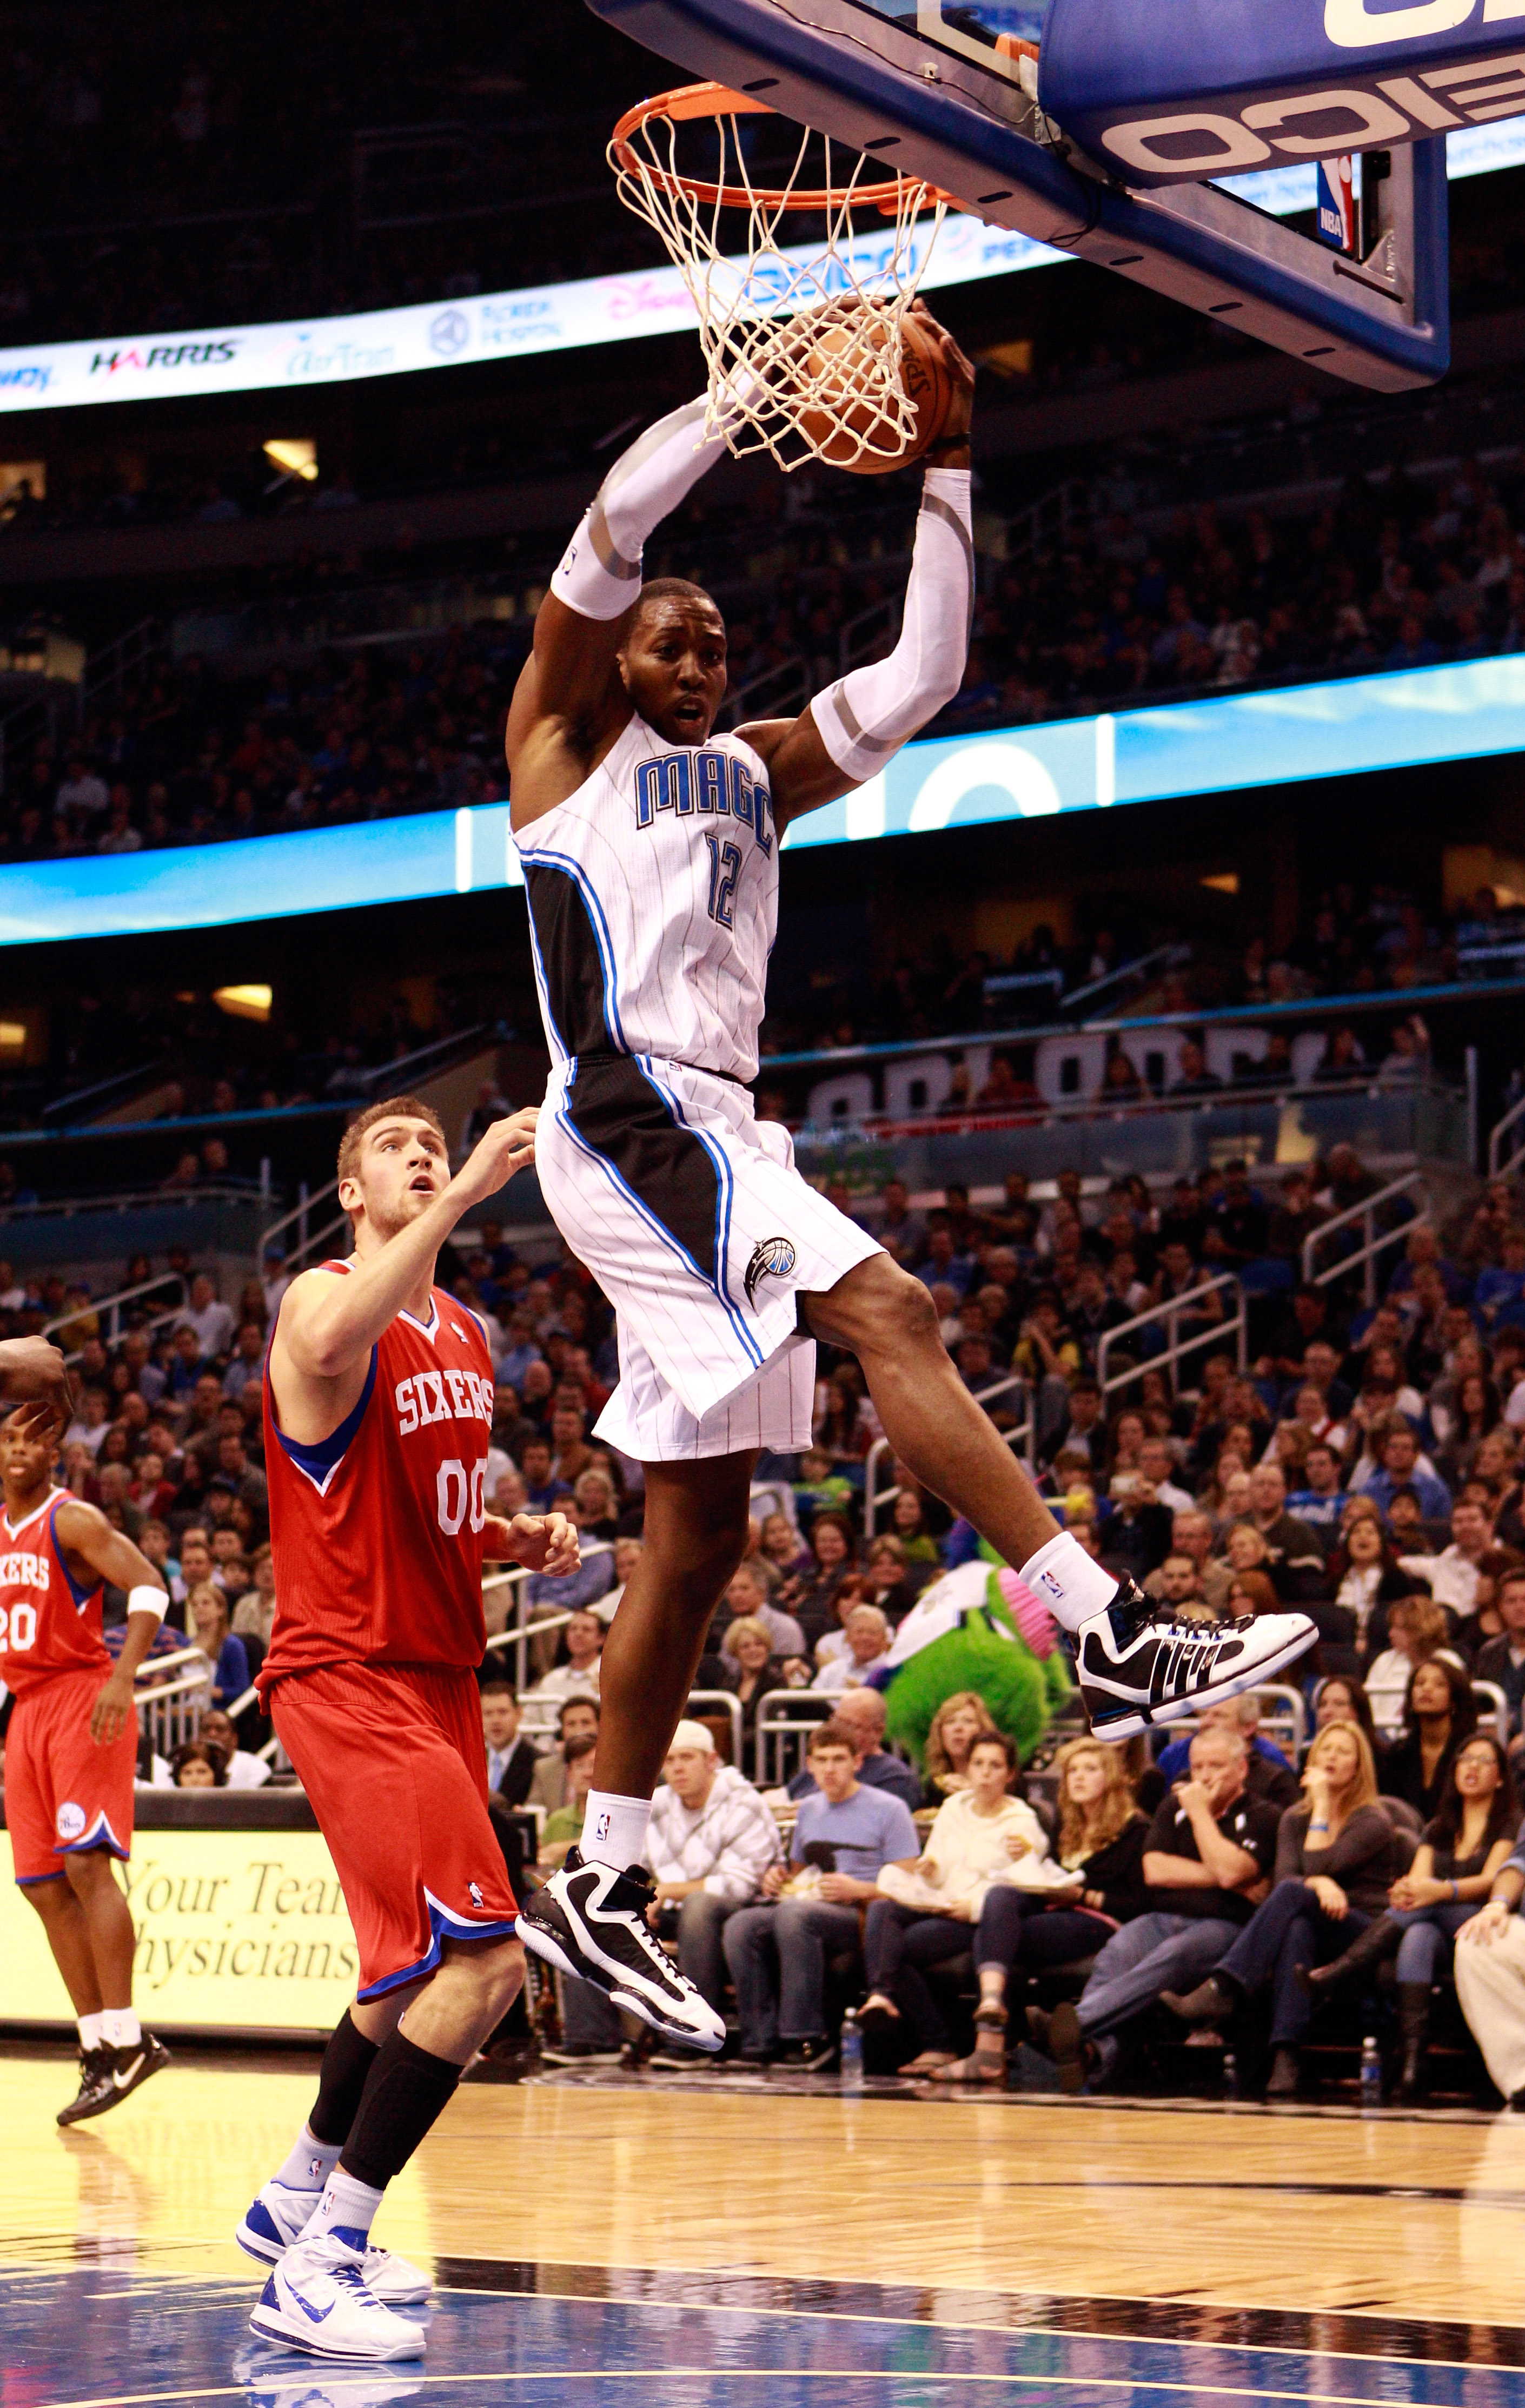 ORLANDO, FL - DECEMBER 18:  Dwight Hoawrd #12 of the Orlando Magic grabs a rebound over Spencer Hawes #00 of the Philadelphia 76ers during the game at Amway Arena on December 18, 2010 in Orlando, Florida.  NOTE TO USER: User expressly acknowledges and agr